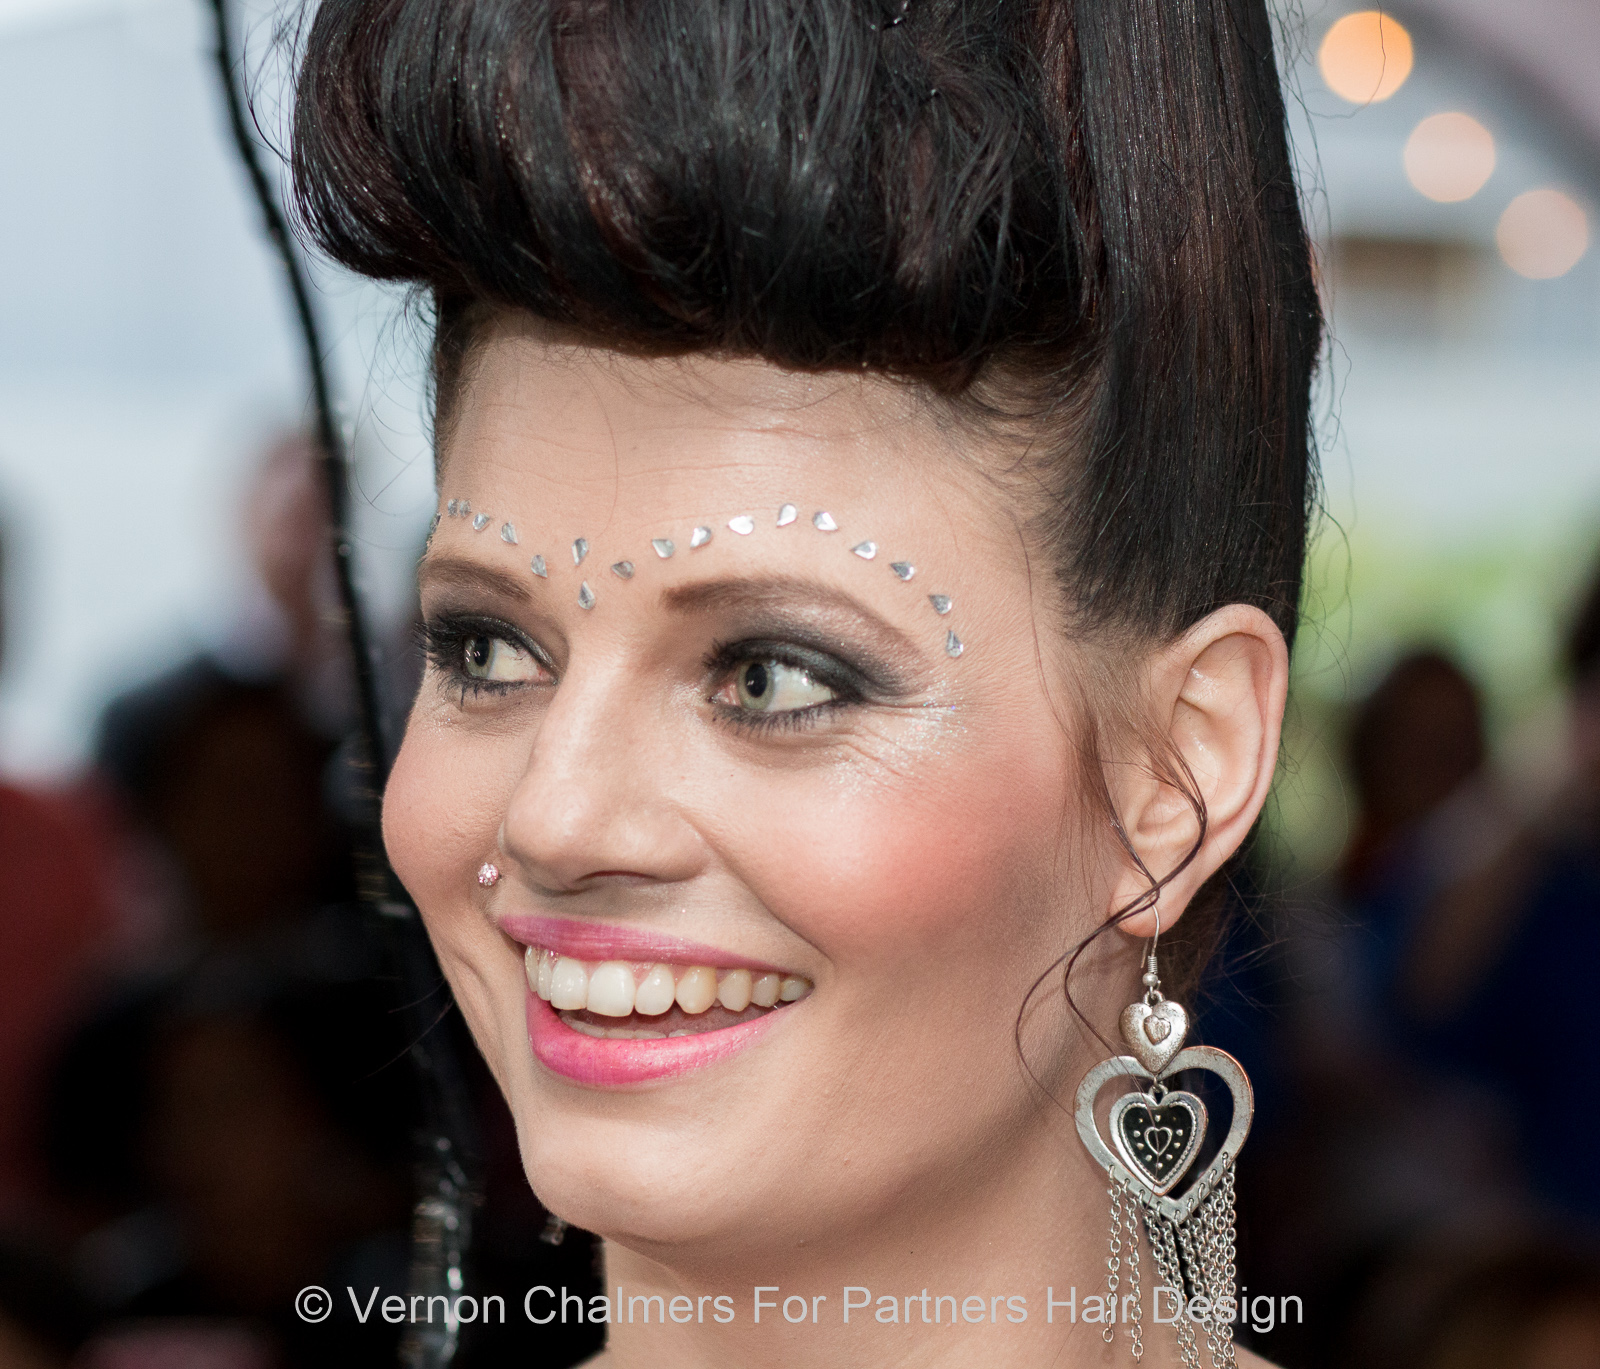 Vernon Chalmers Photography: Canon EF 85mm f/1.8 USM Lens For Hair ...